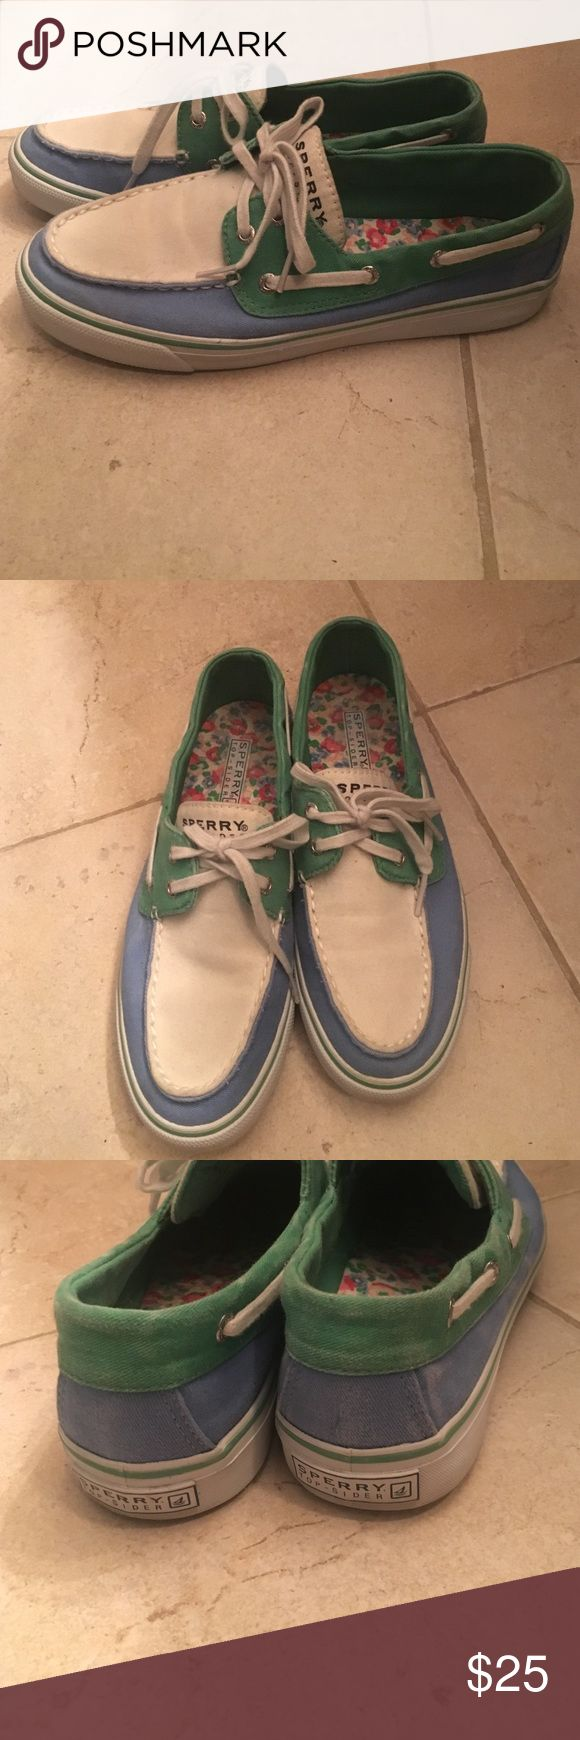 1000 ideas about cleaning sperrys on clean